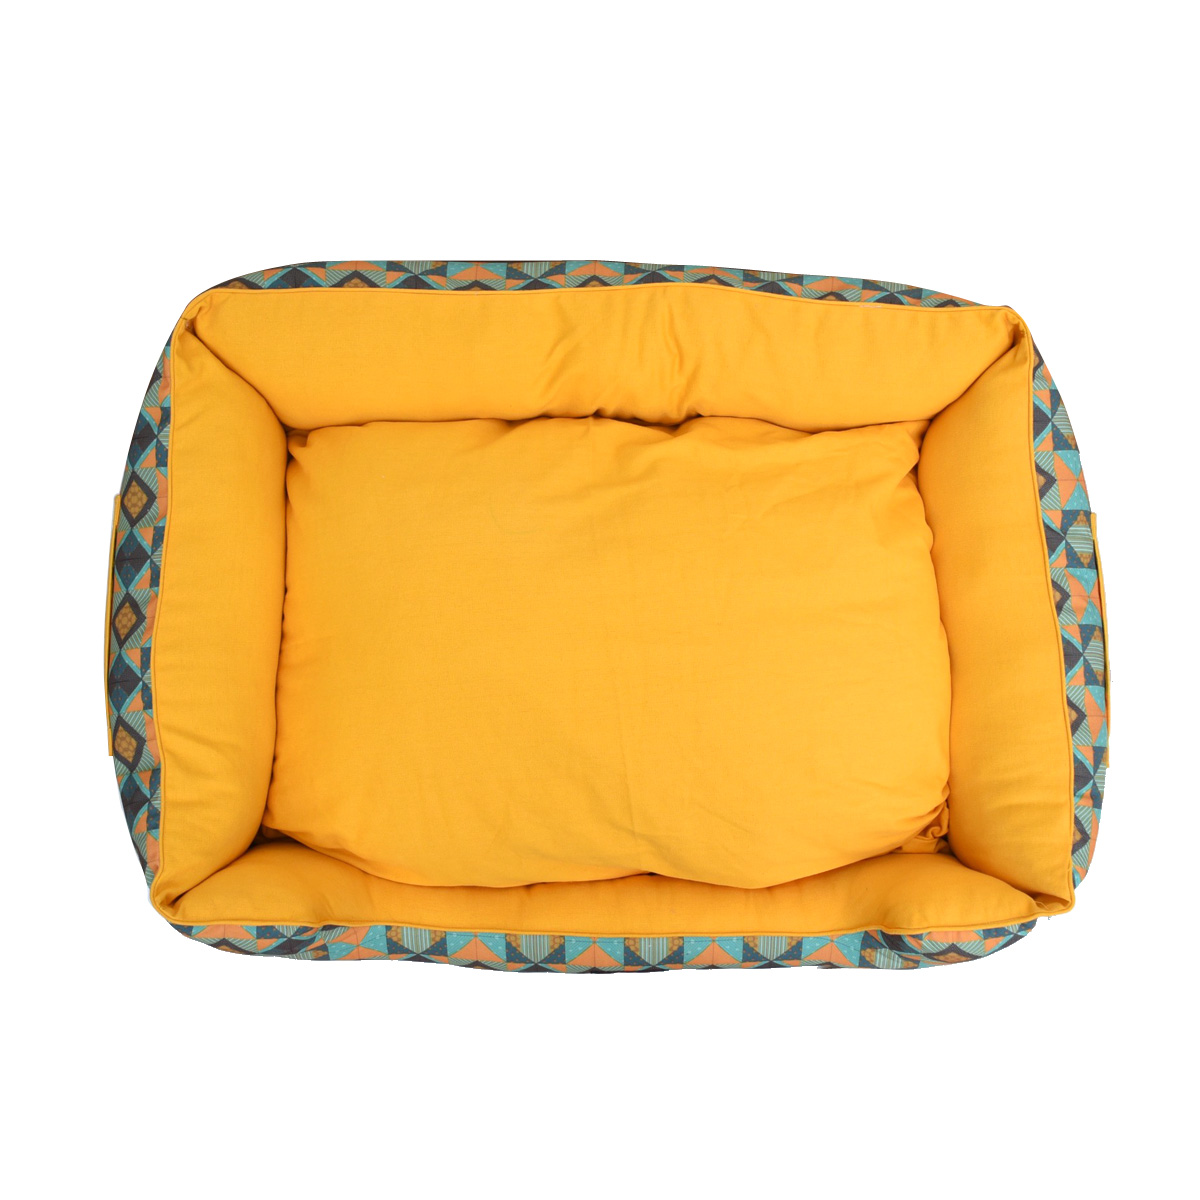 Mutt Of Course Lounger Bed For Dogs - Trickey Turkey - Medium